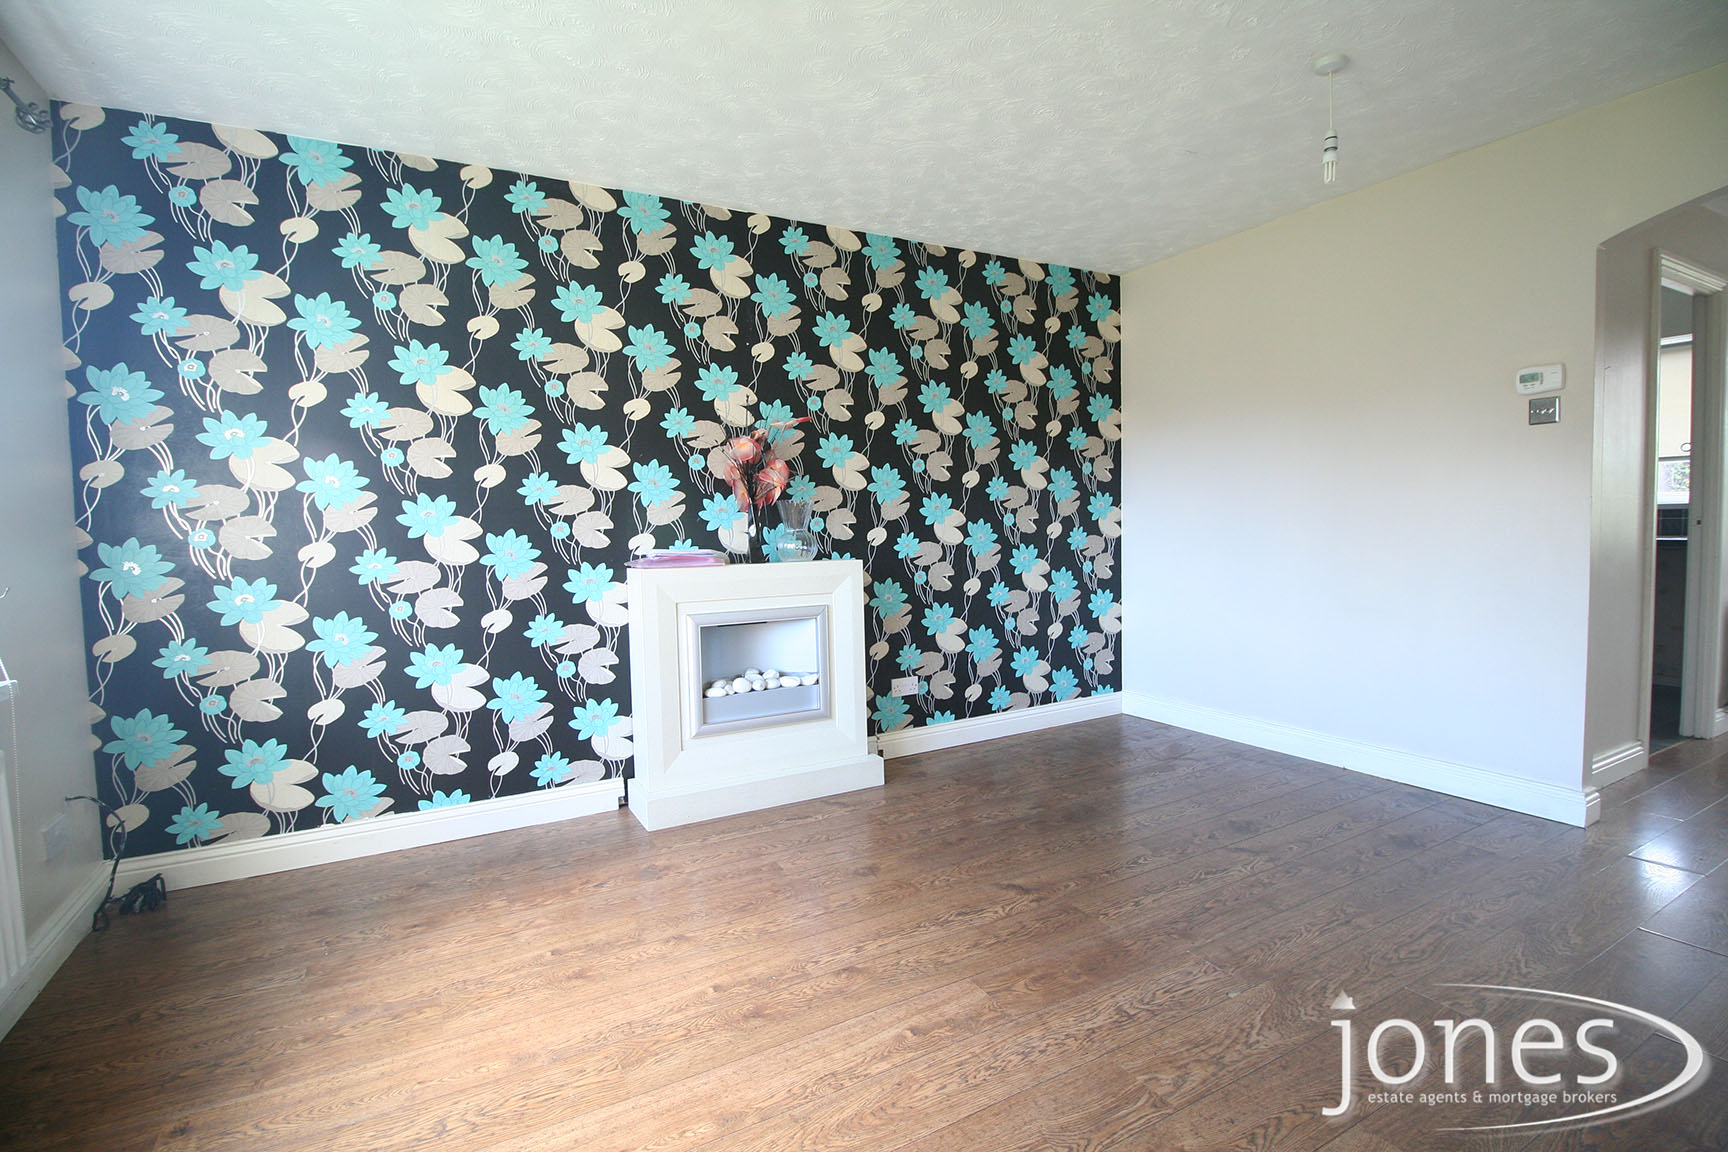 Home for Sale Let - Photo 02 Gatesgarth Close,  Bakers Mead, Hartlepool, TS24 8RB